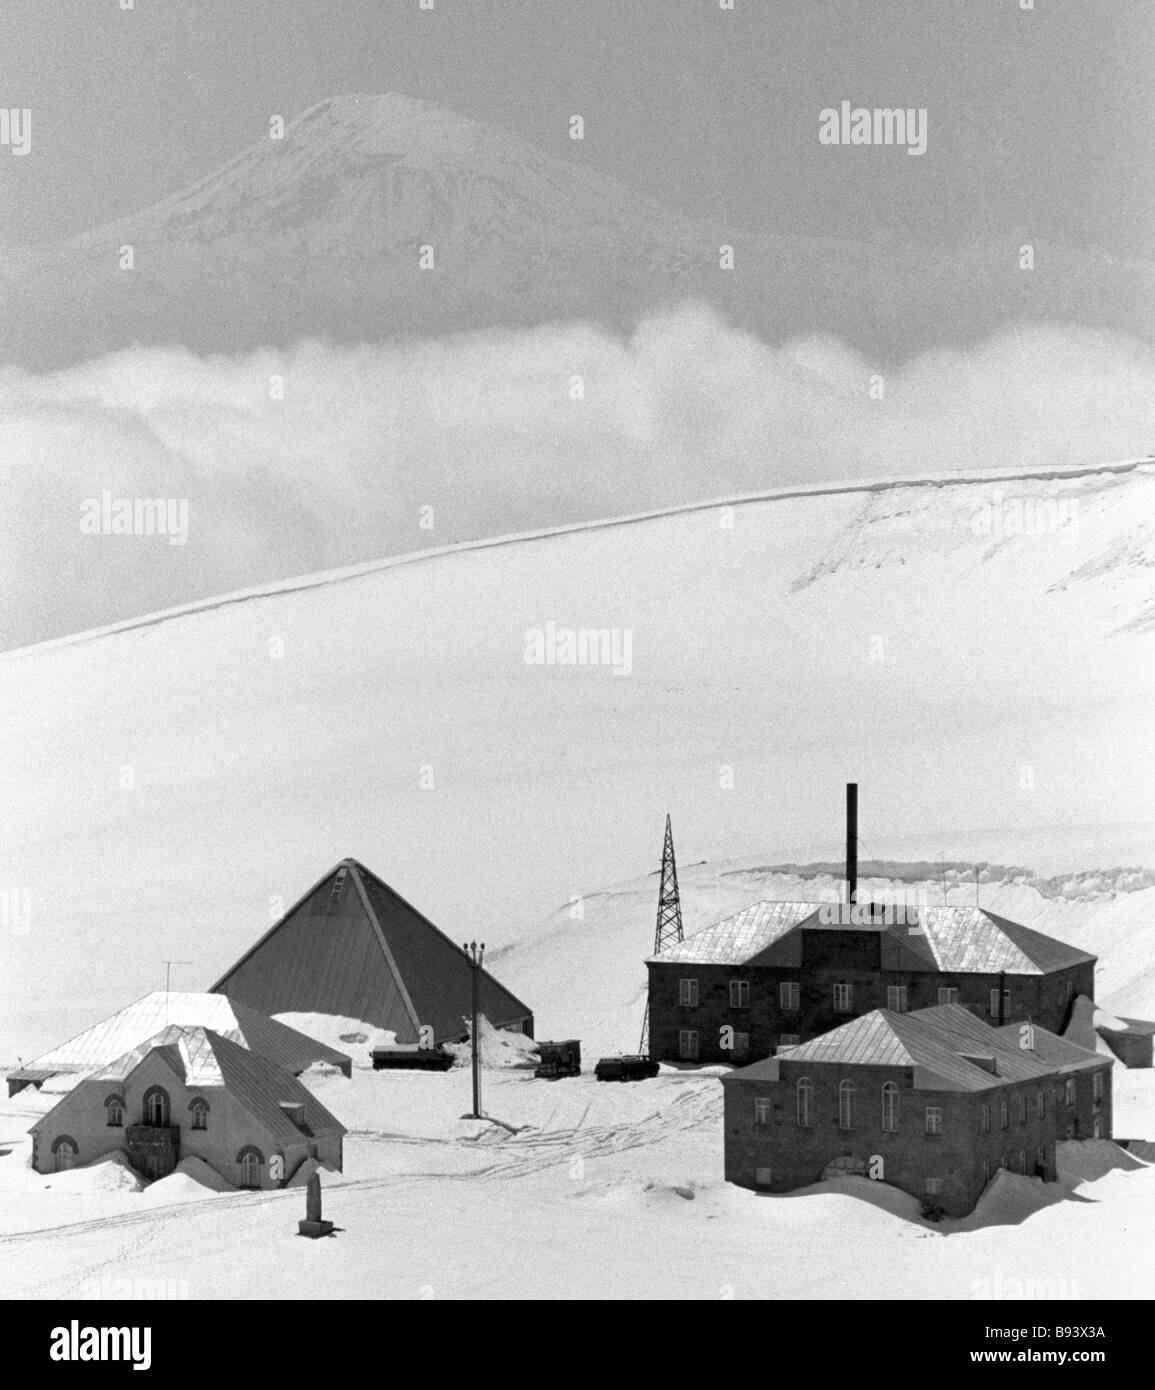 The Aragats cosmic ray station in the mountains Armenia - Stock Image